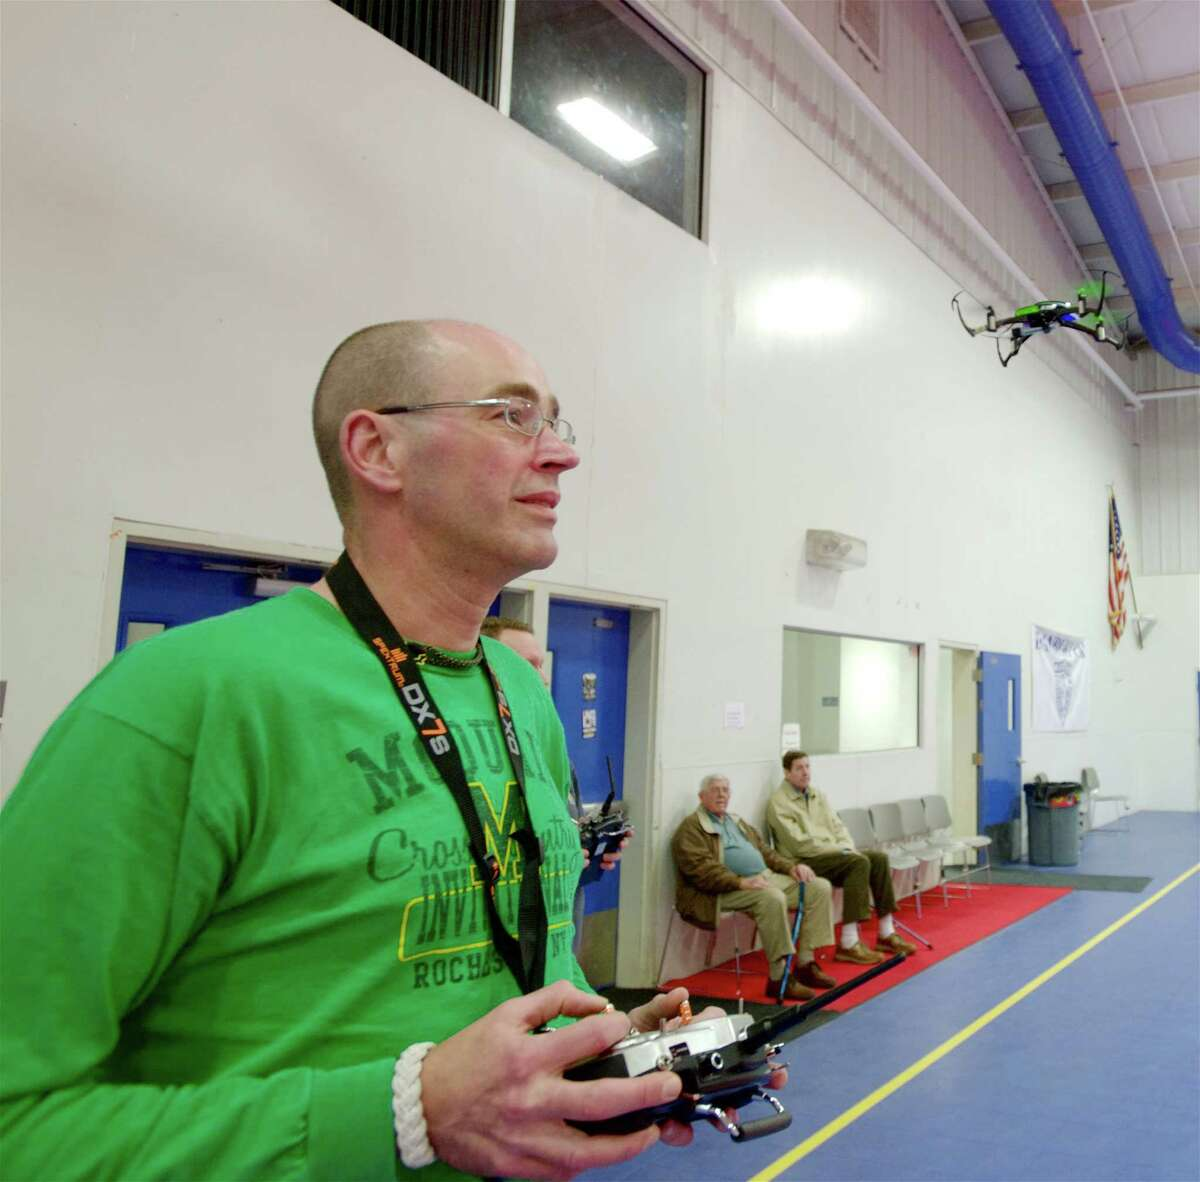 Hobbyist Chris Kendra, 52, of Pawing, New York, hovers a Nano QX Quad Copter right in front of his face, at the Police Activities League on Hayestown Road, in Danbury, Conn., on Wednesday night, April 9, 2014.